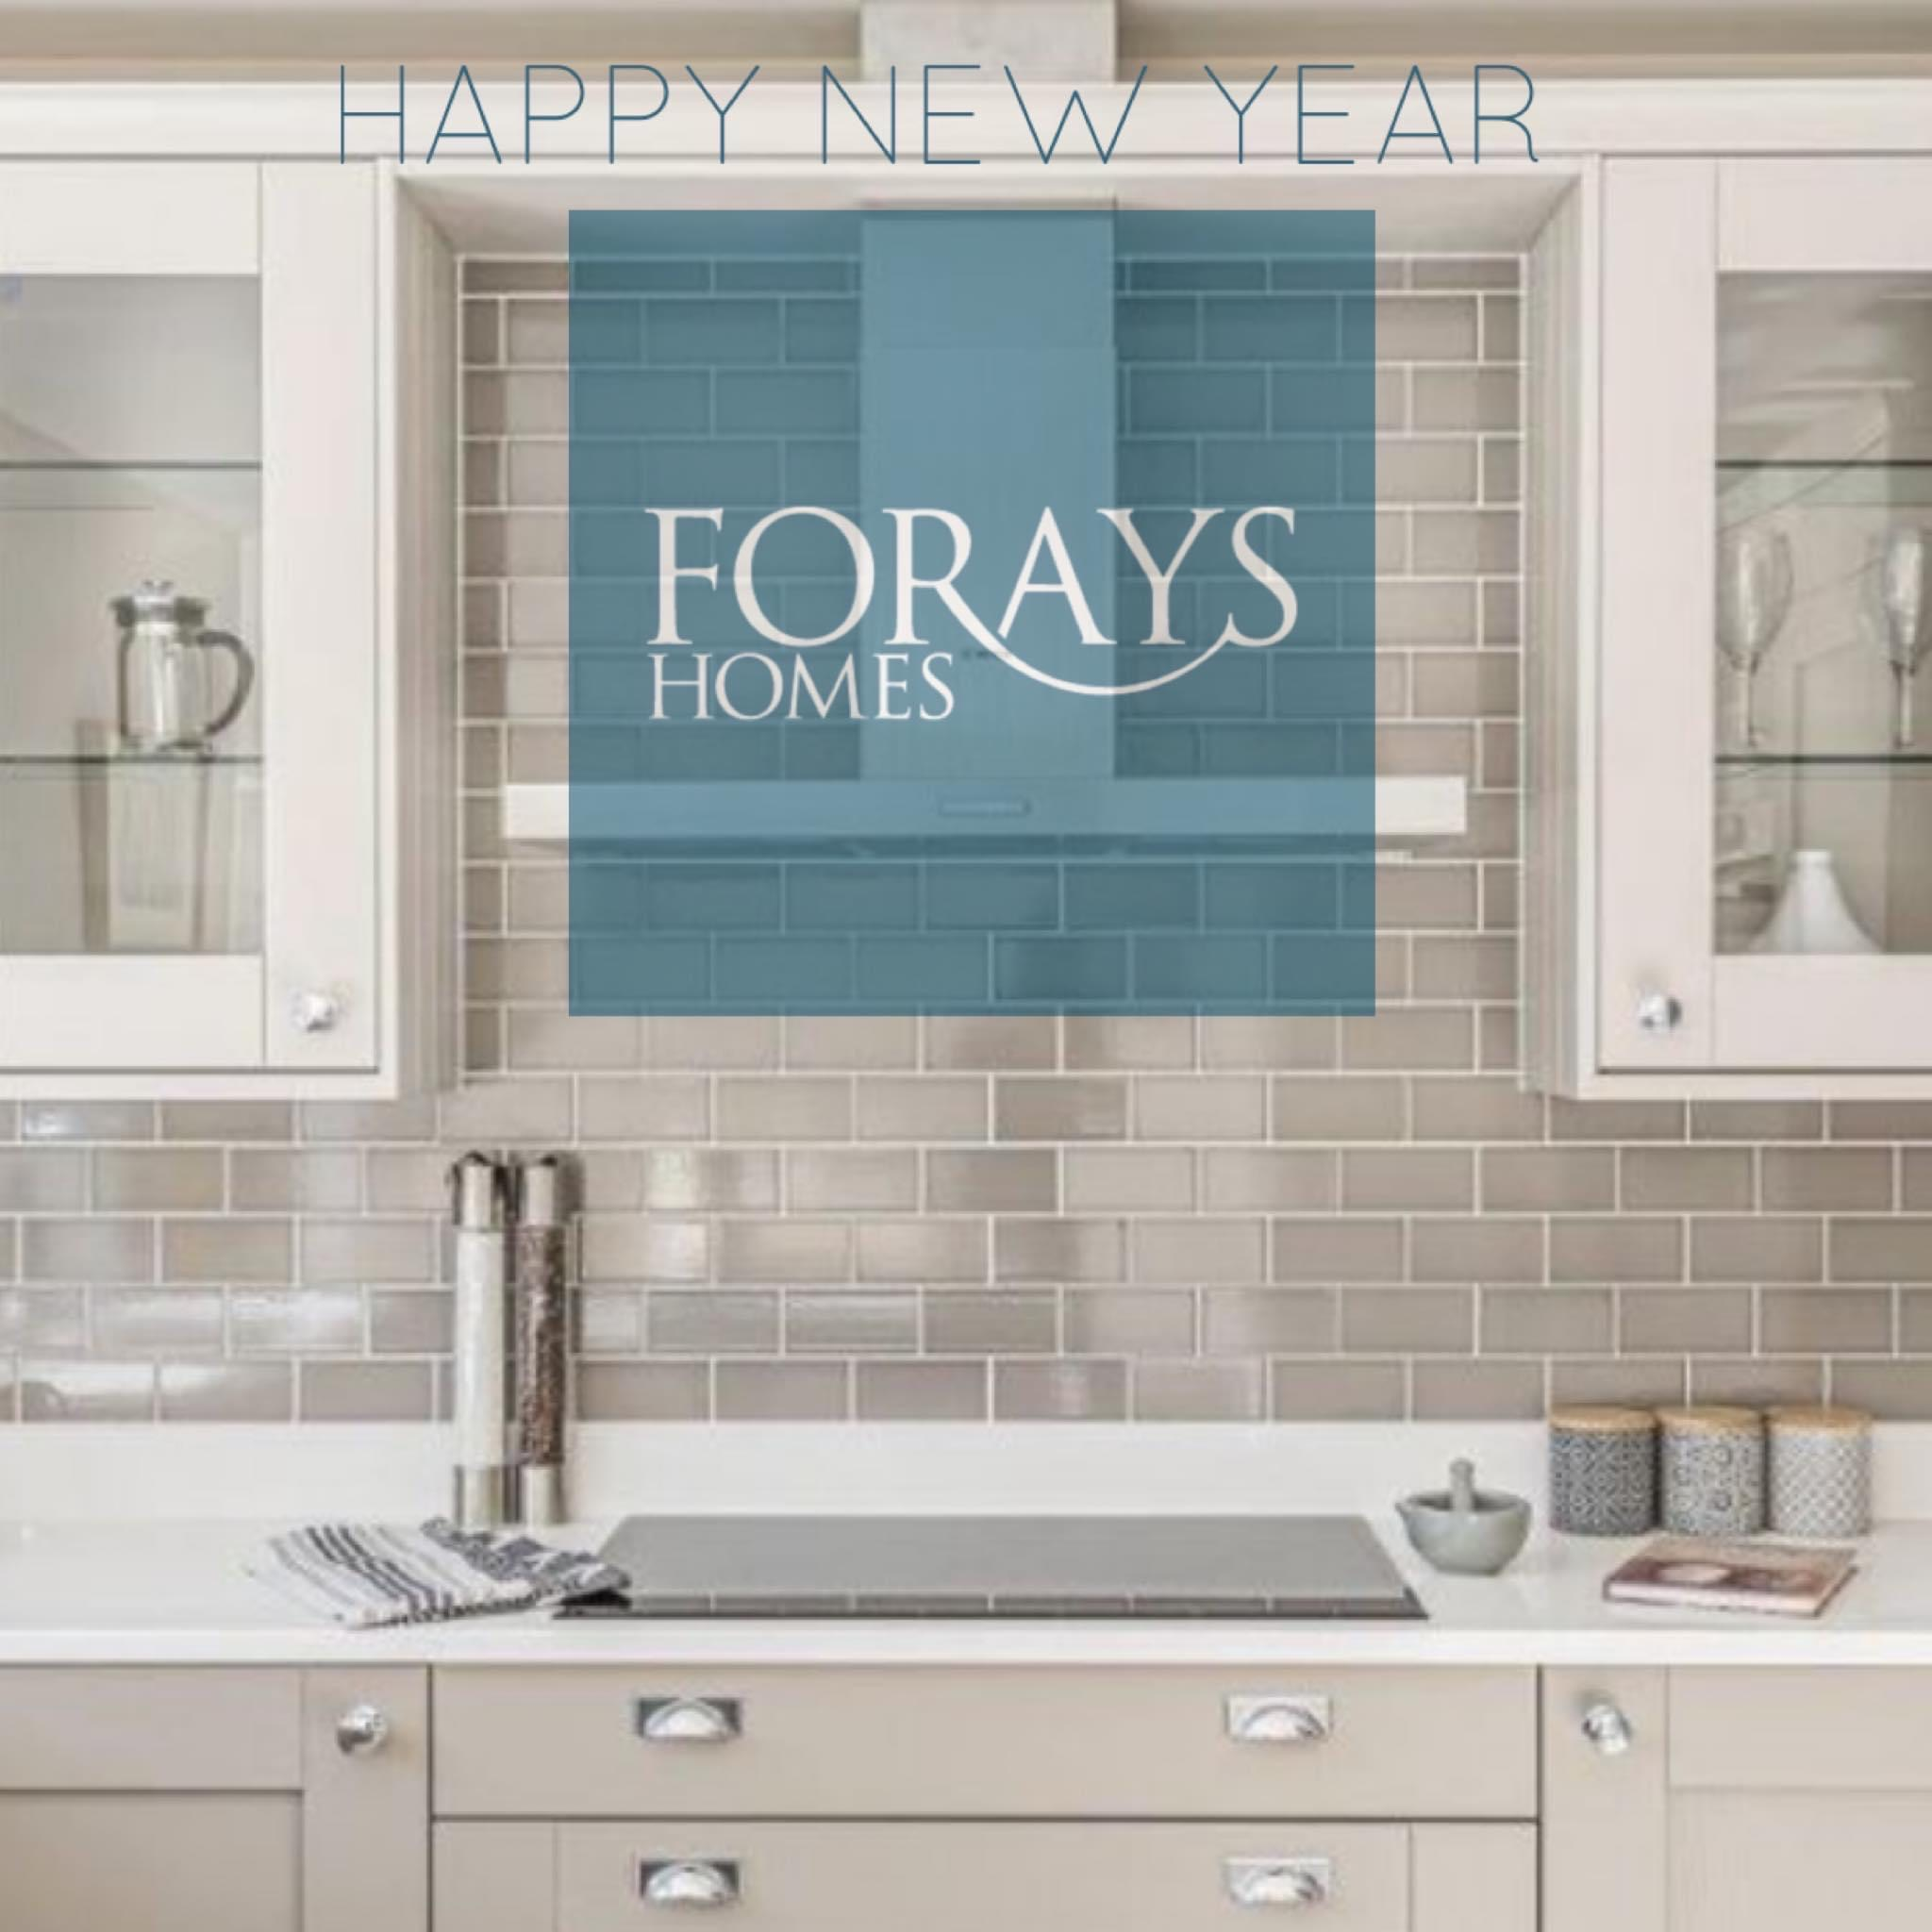 Happy New Year from all of us at Forays Homes